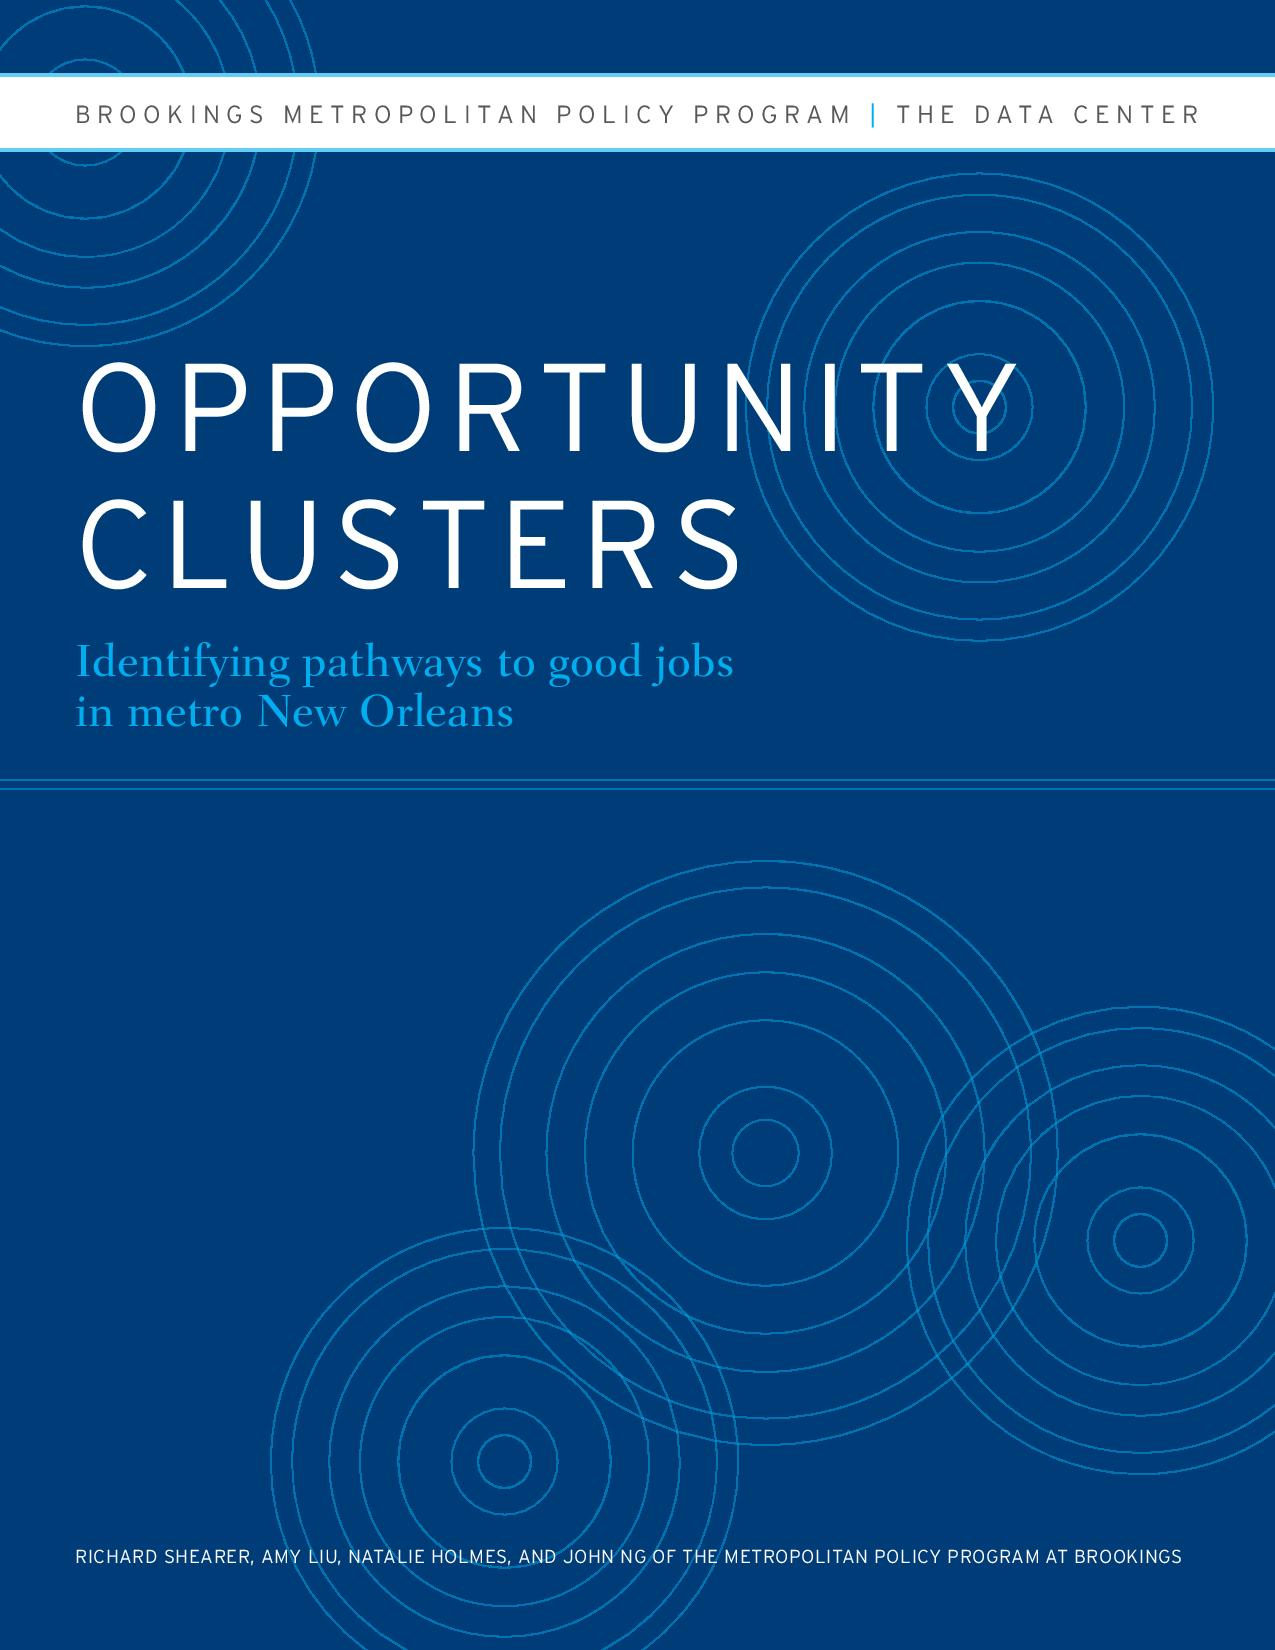 Opportunity Clusters: Identifying Pathways to Good Jobs in Metro New Orleans